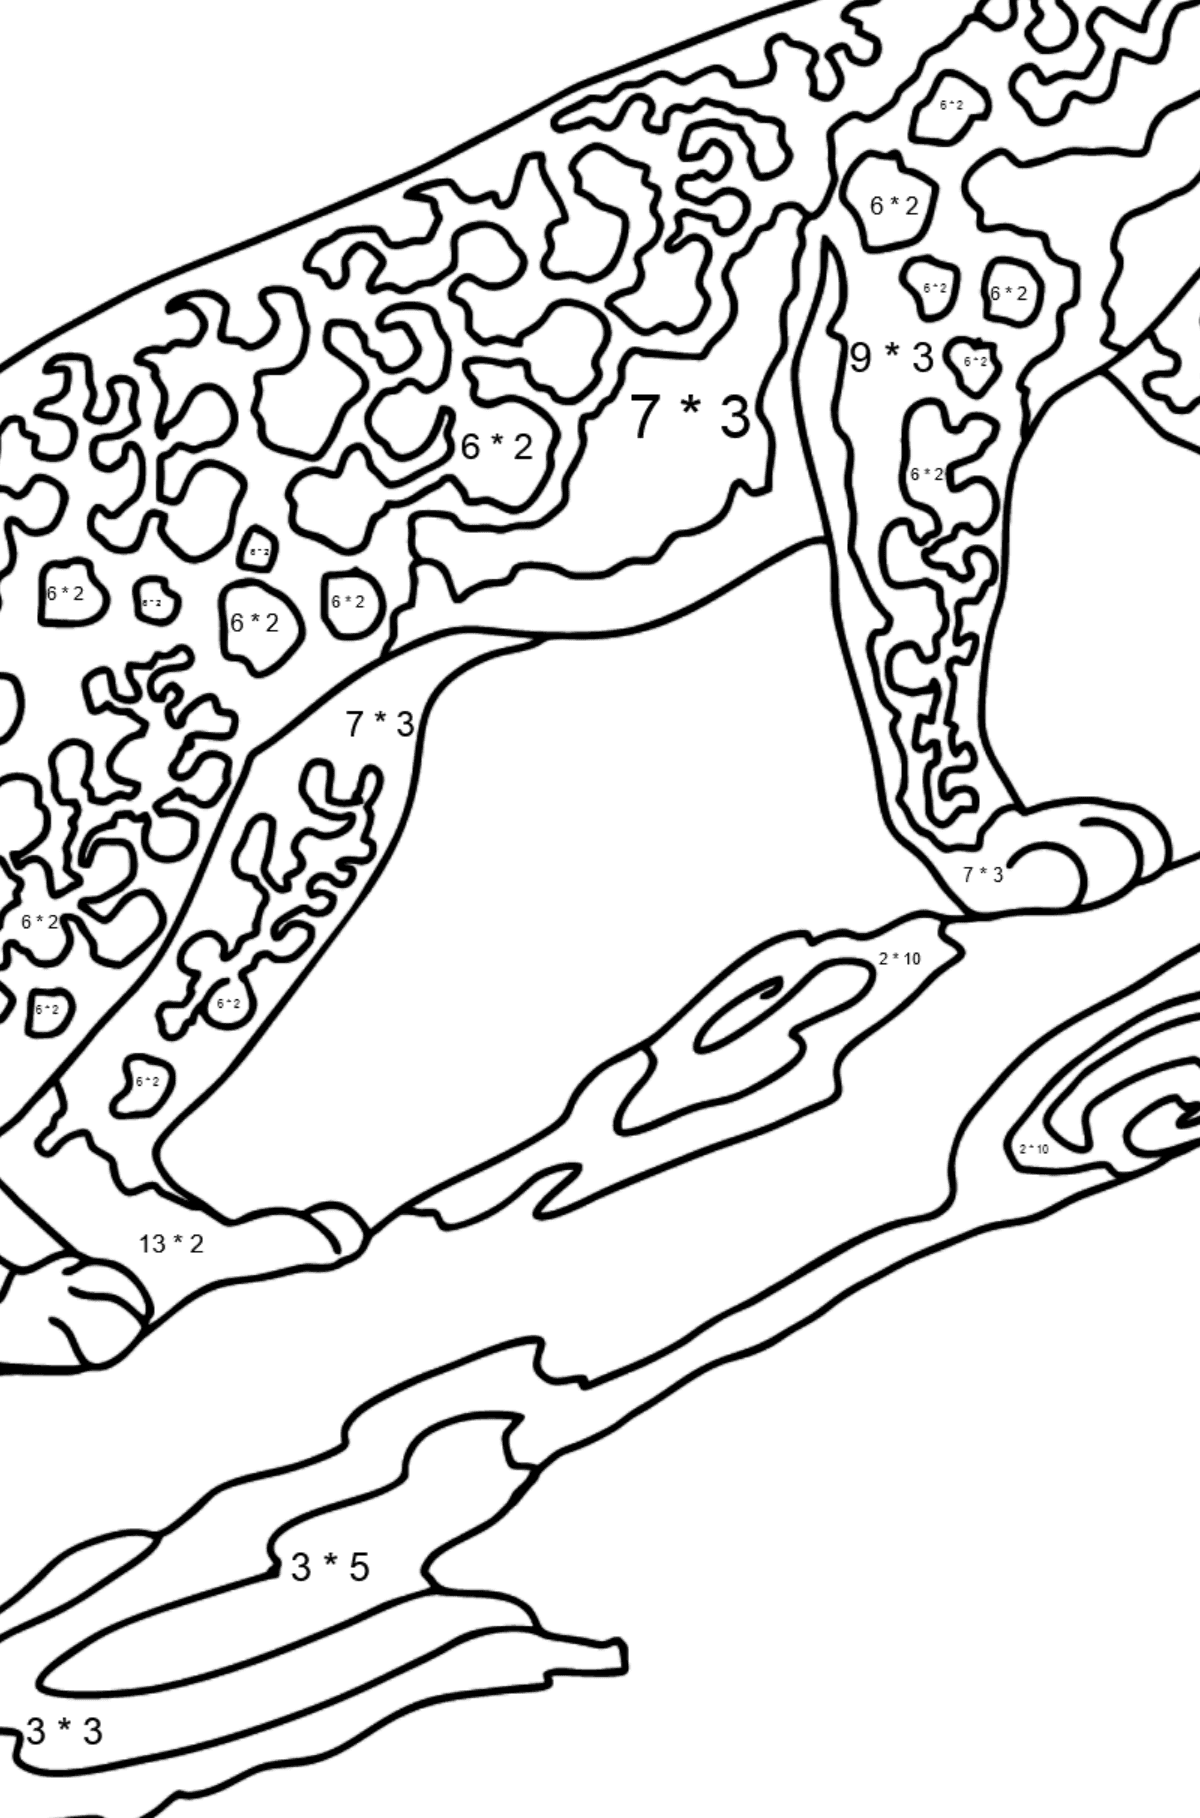 Coloring Page - A Leopard is on a Hunt - Math Coloring - Multiplication for Kids